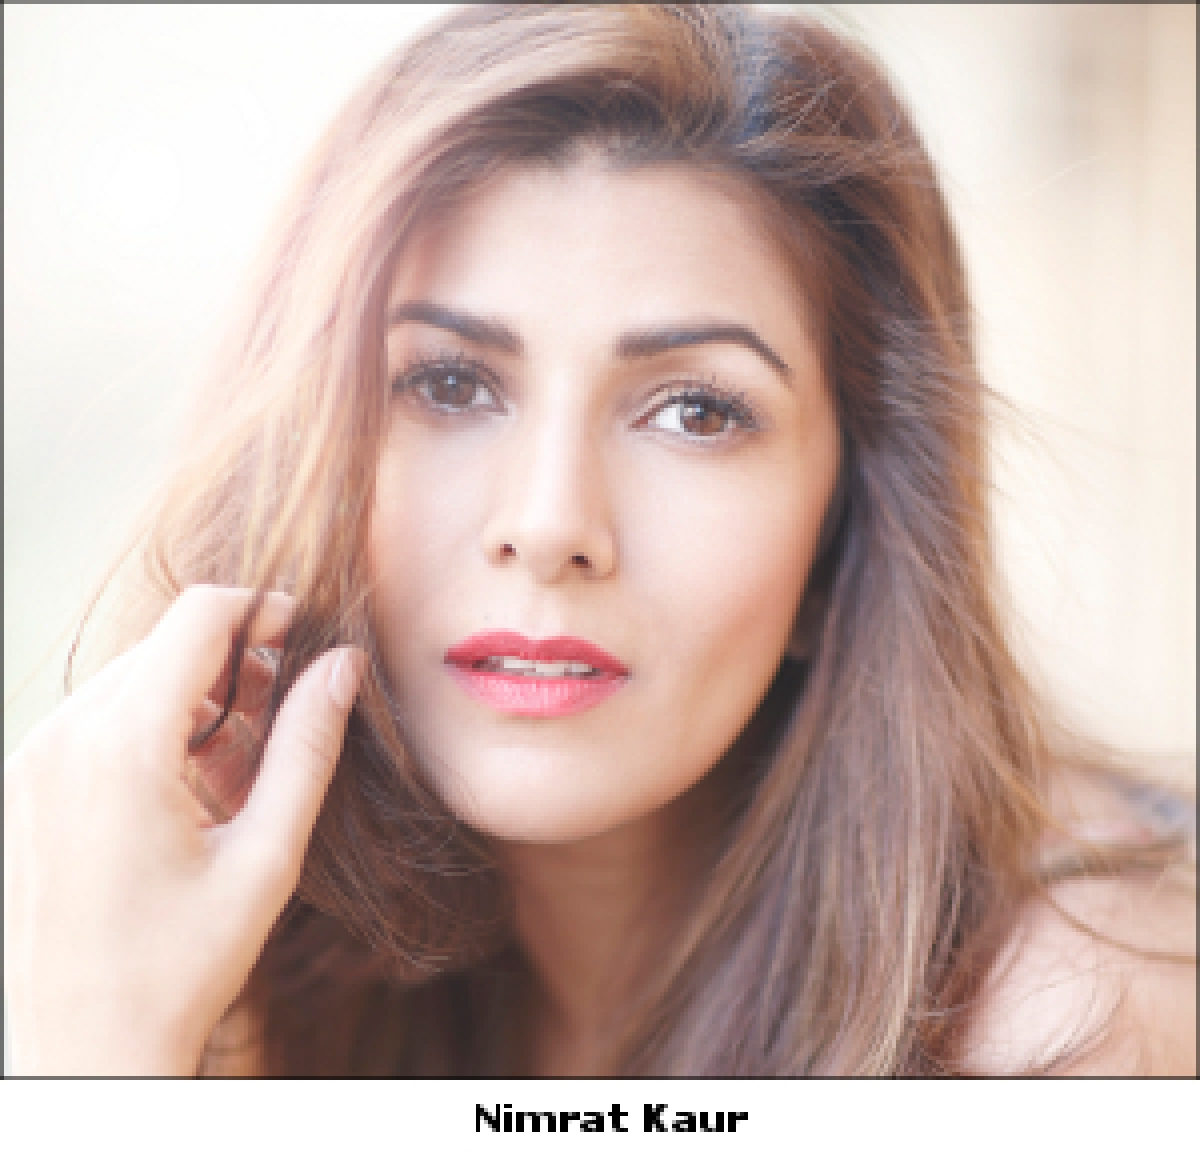 Nimrat Kaur to star in ALT Balaji's first series